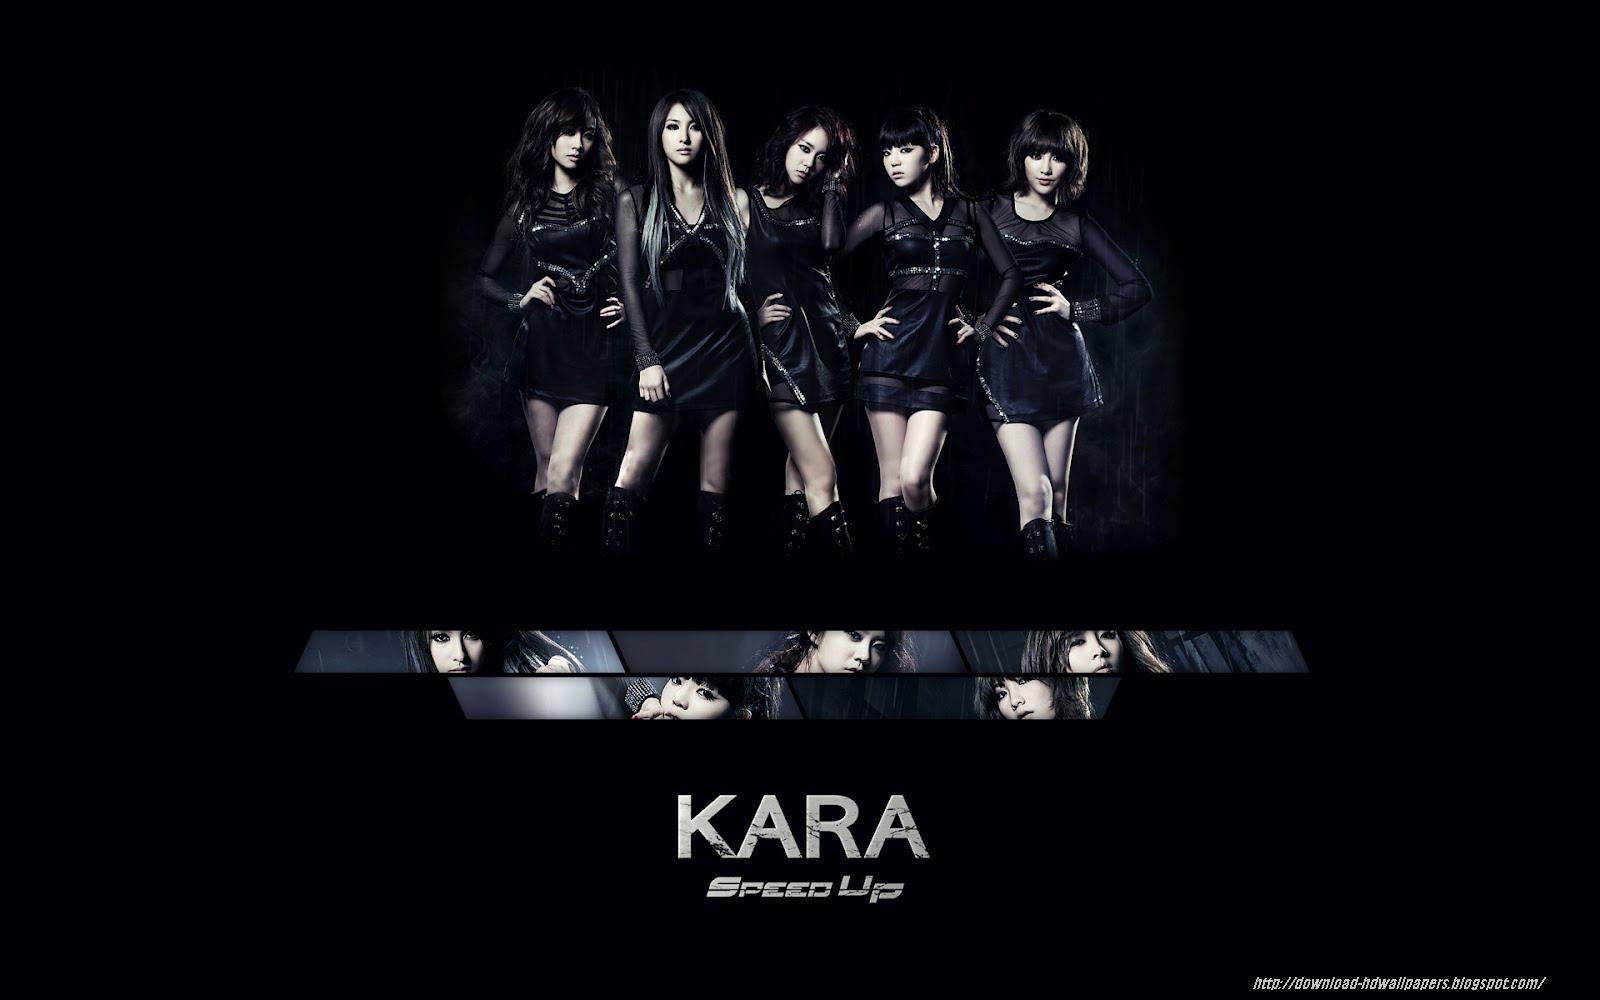 kara_speedup-1920x1200-HD.JPG